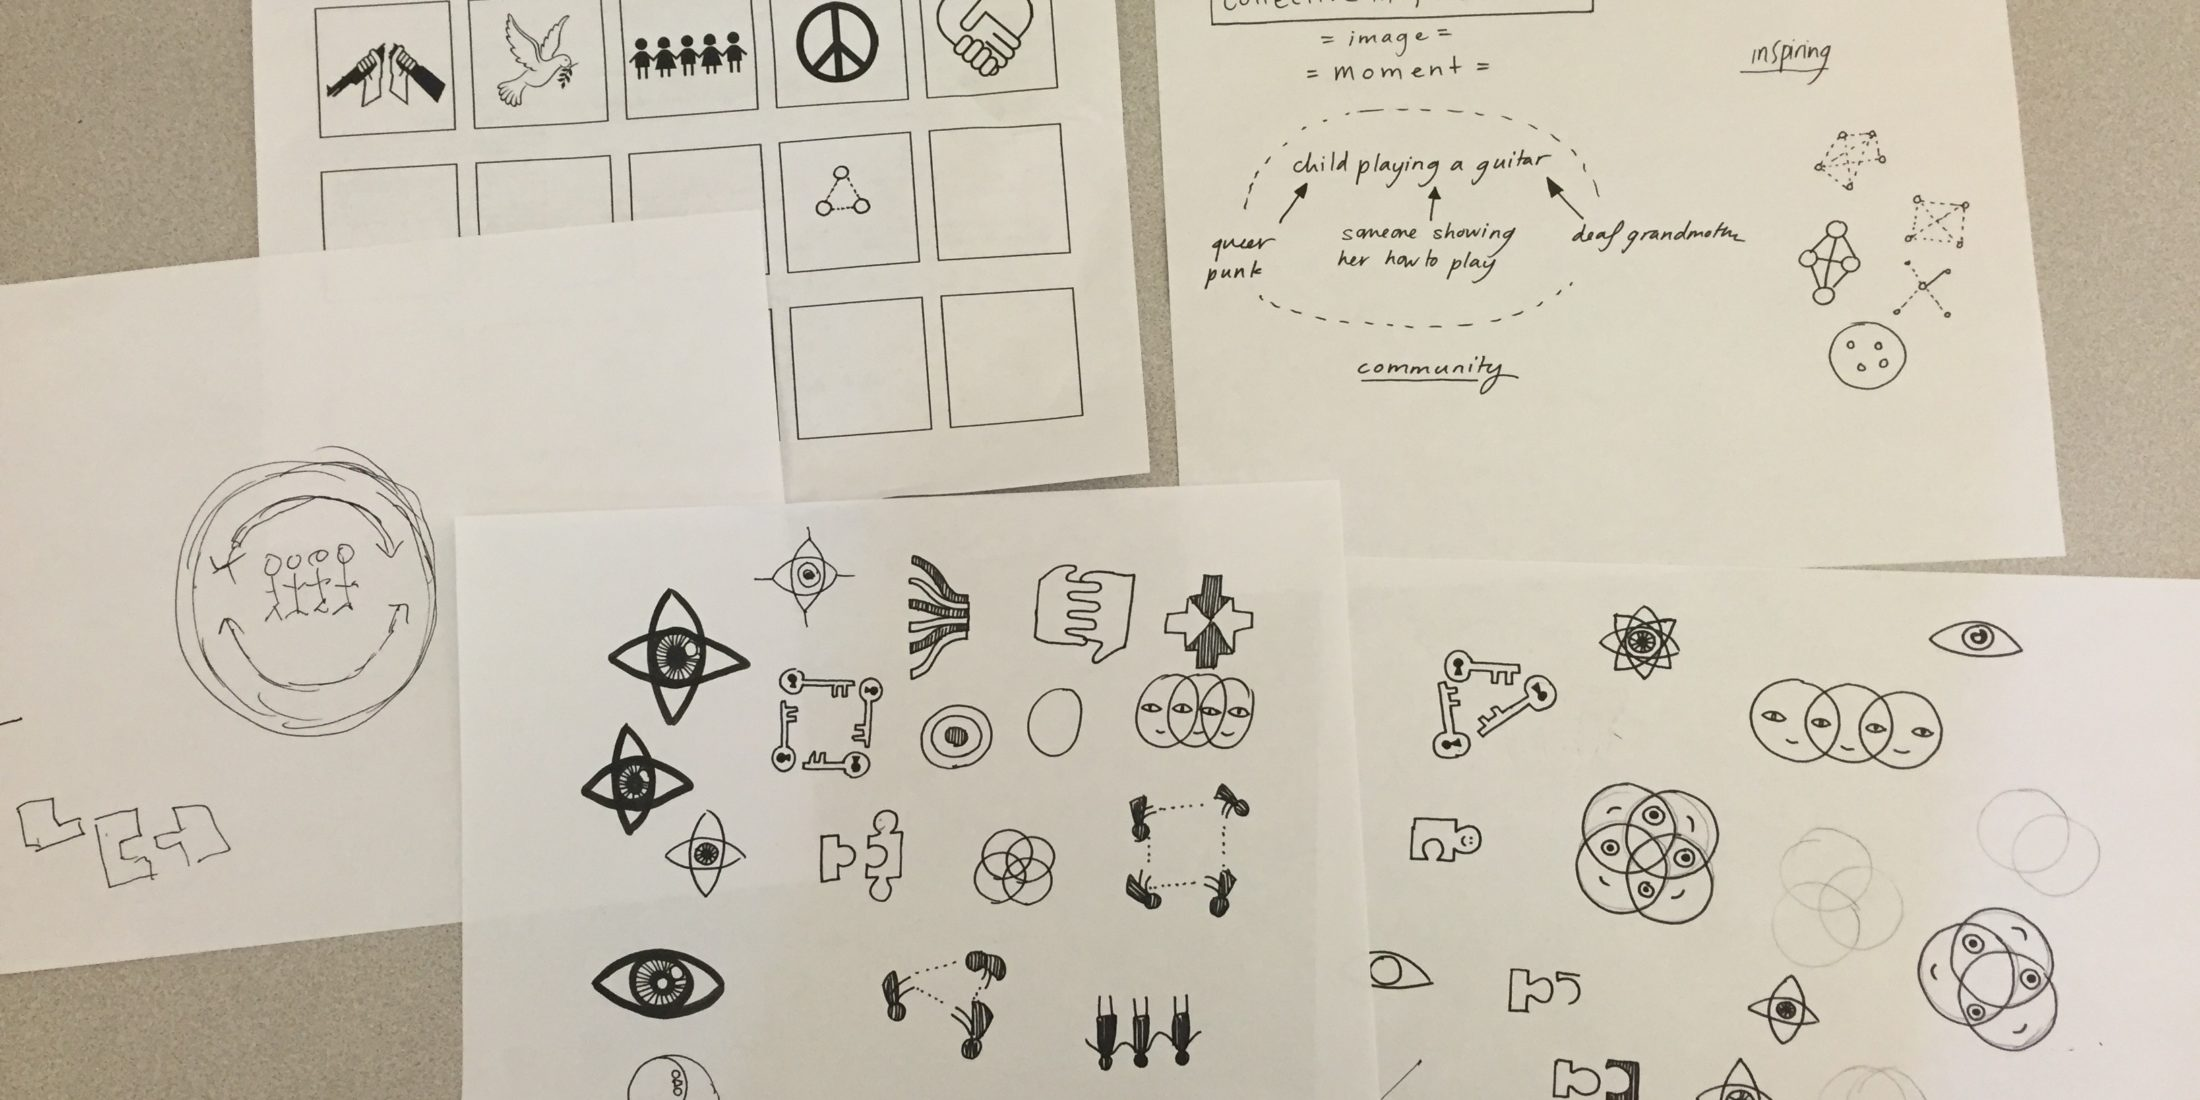 Photo: Five sheets of paper sitting on a table. One of the sheets is an exercise sheet to generate different types of icons. The other four are filled with pencil sketches and notes for new designs.